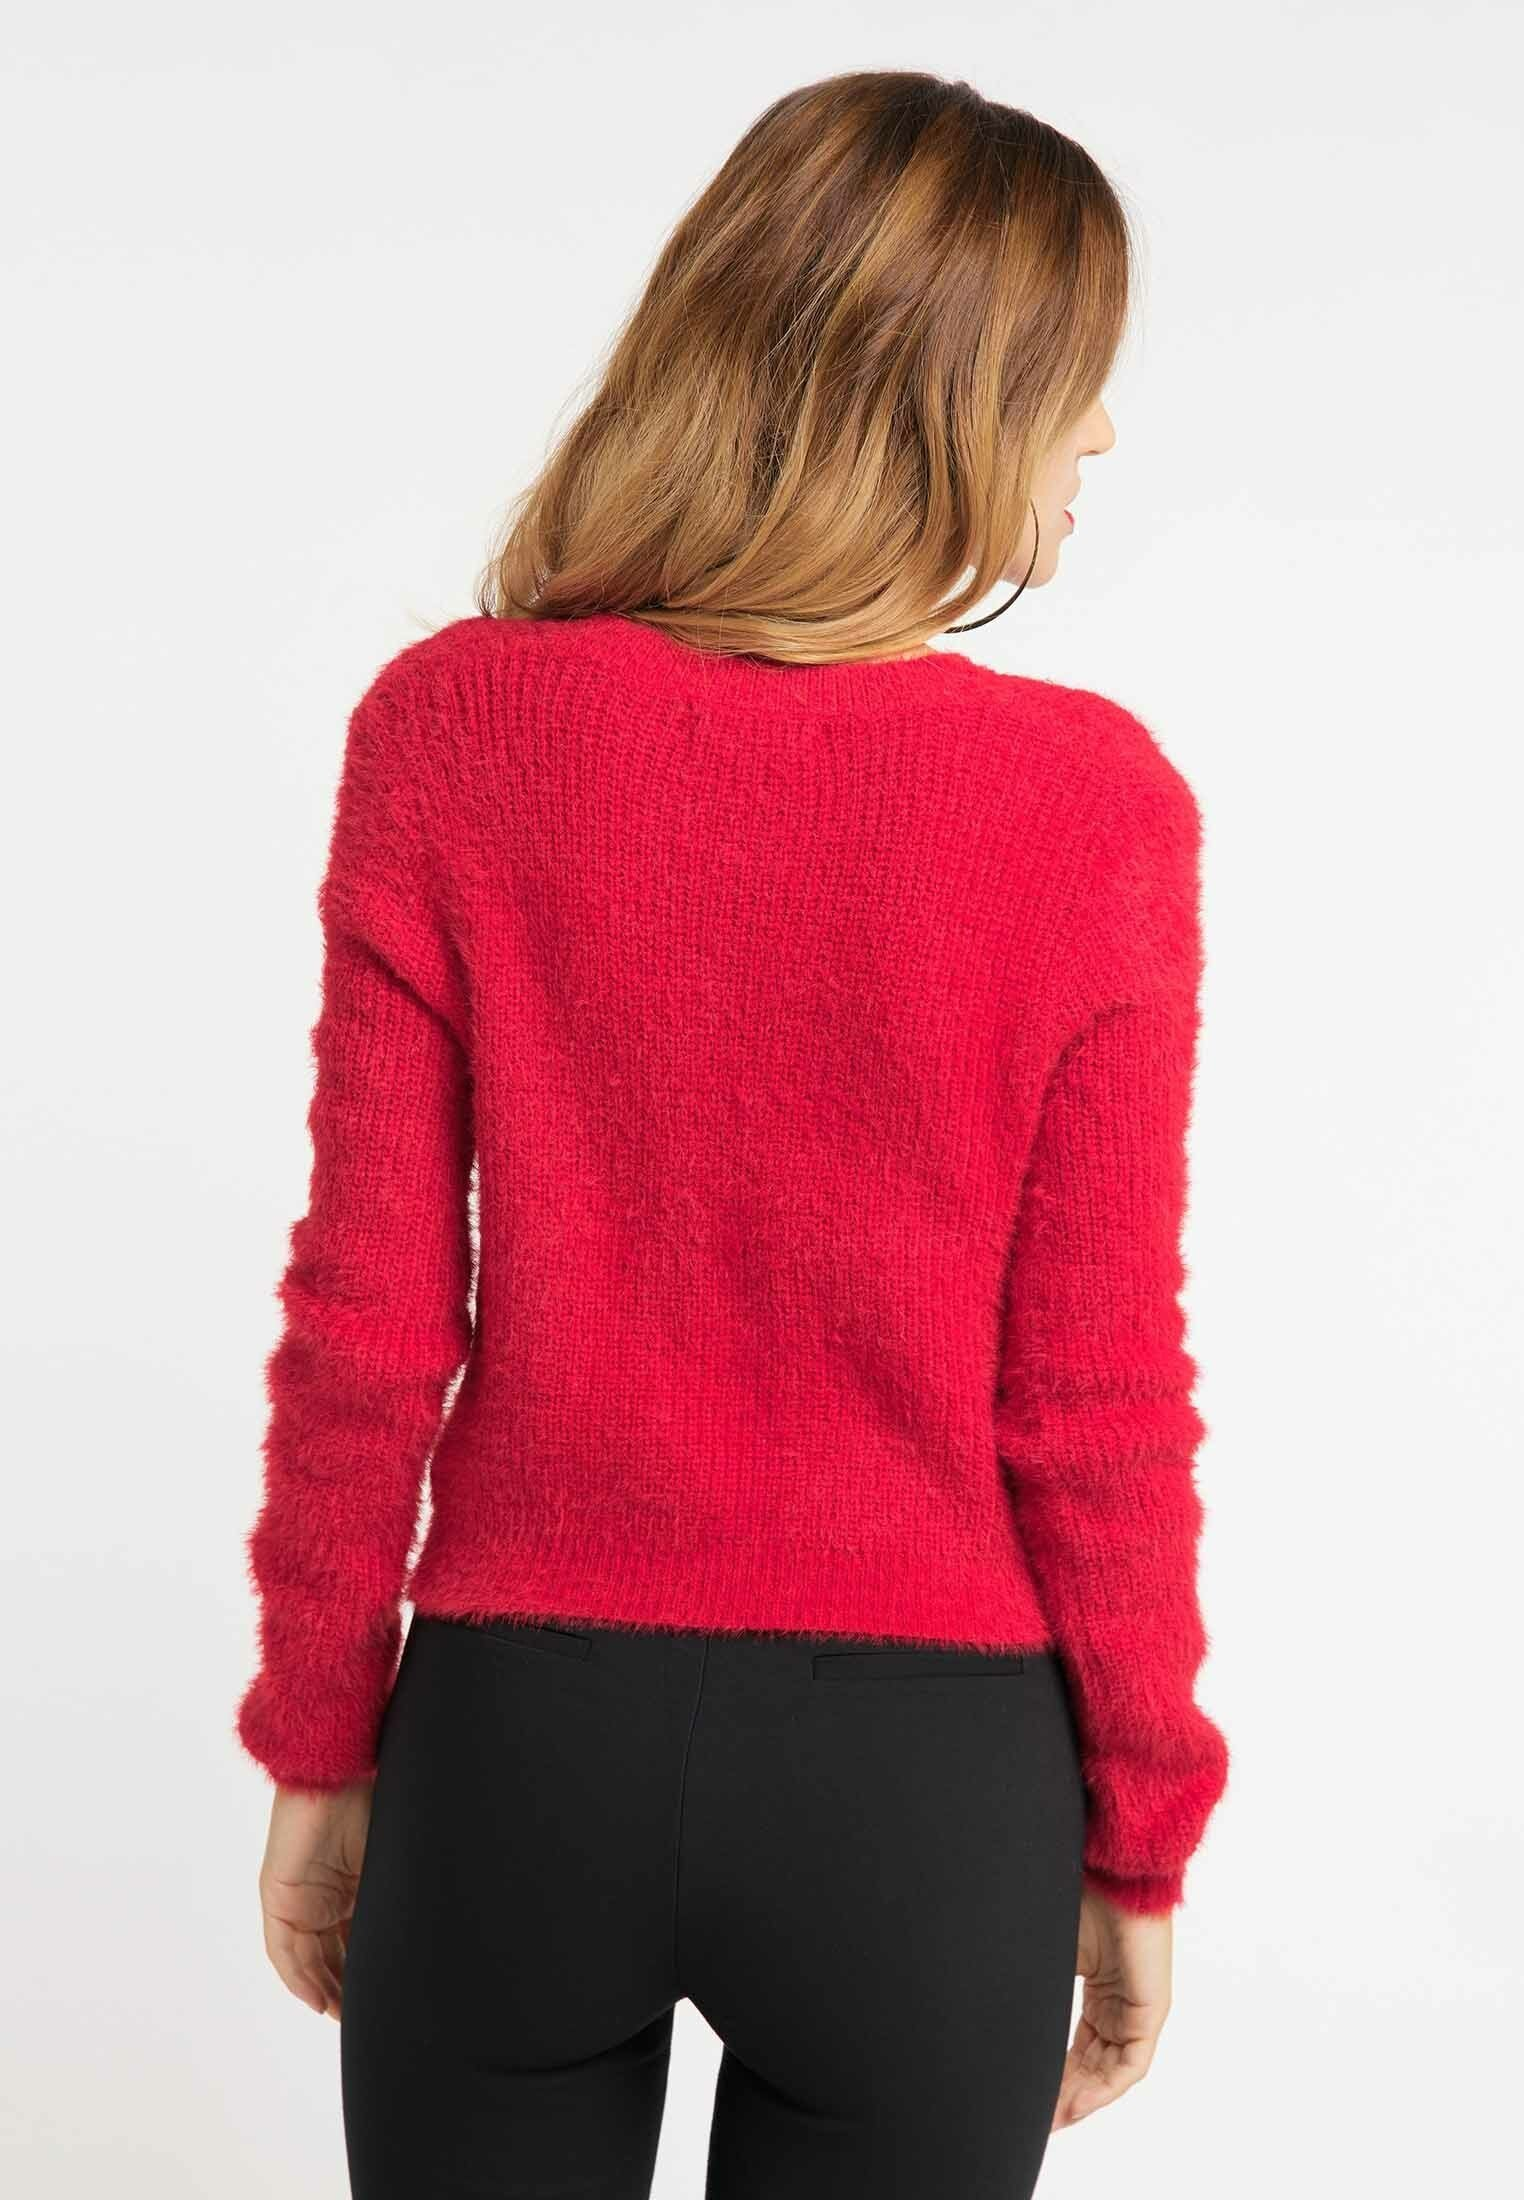 New Arrival Fashion Women's Clothing faina Jumper red 1i0VhHQ5w